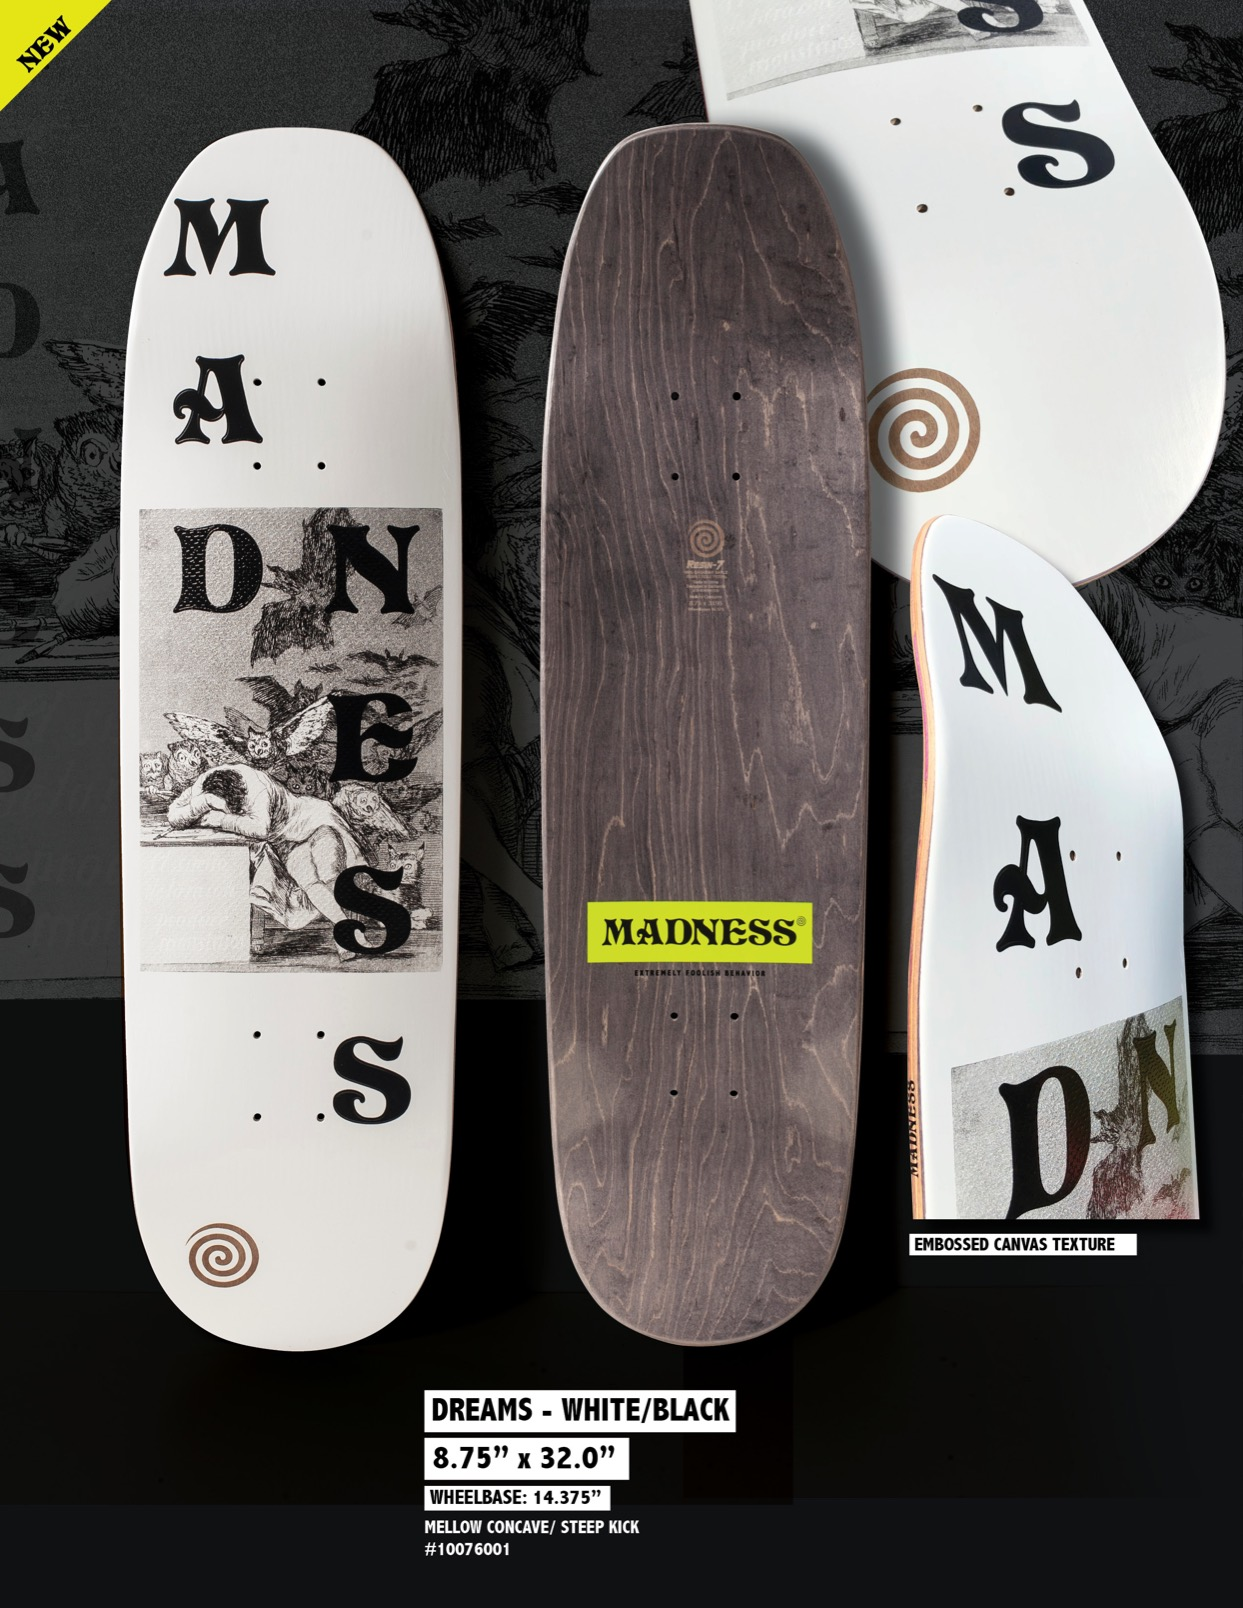 Madness_Skateboards_Dreams_White.jpg